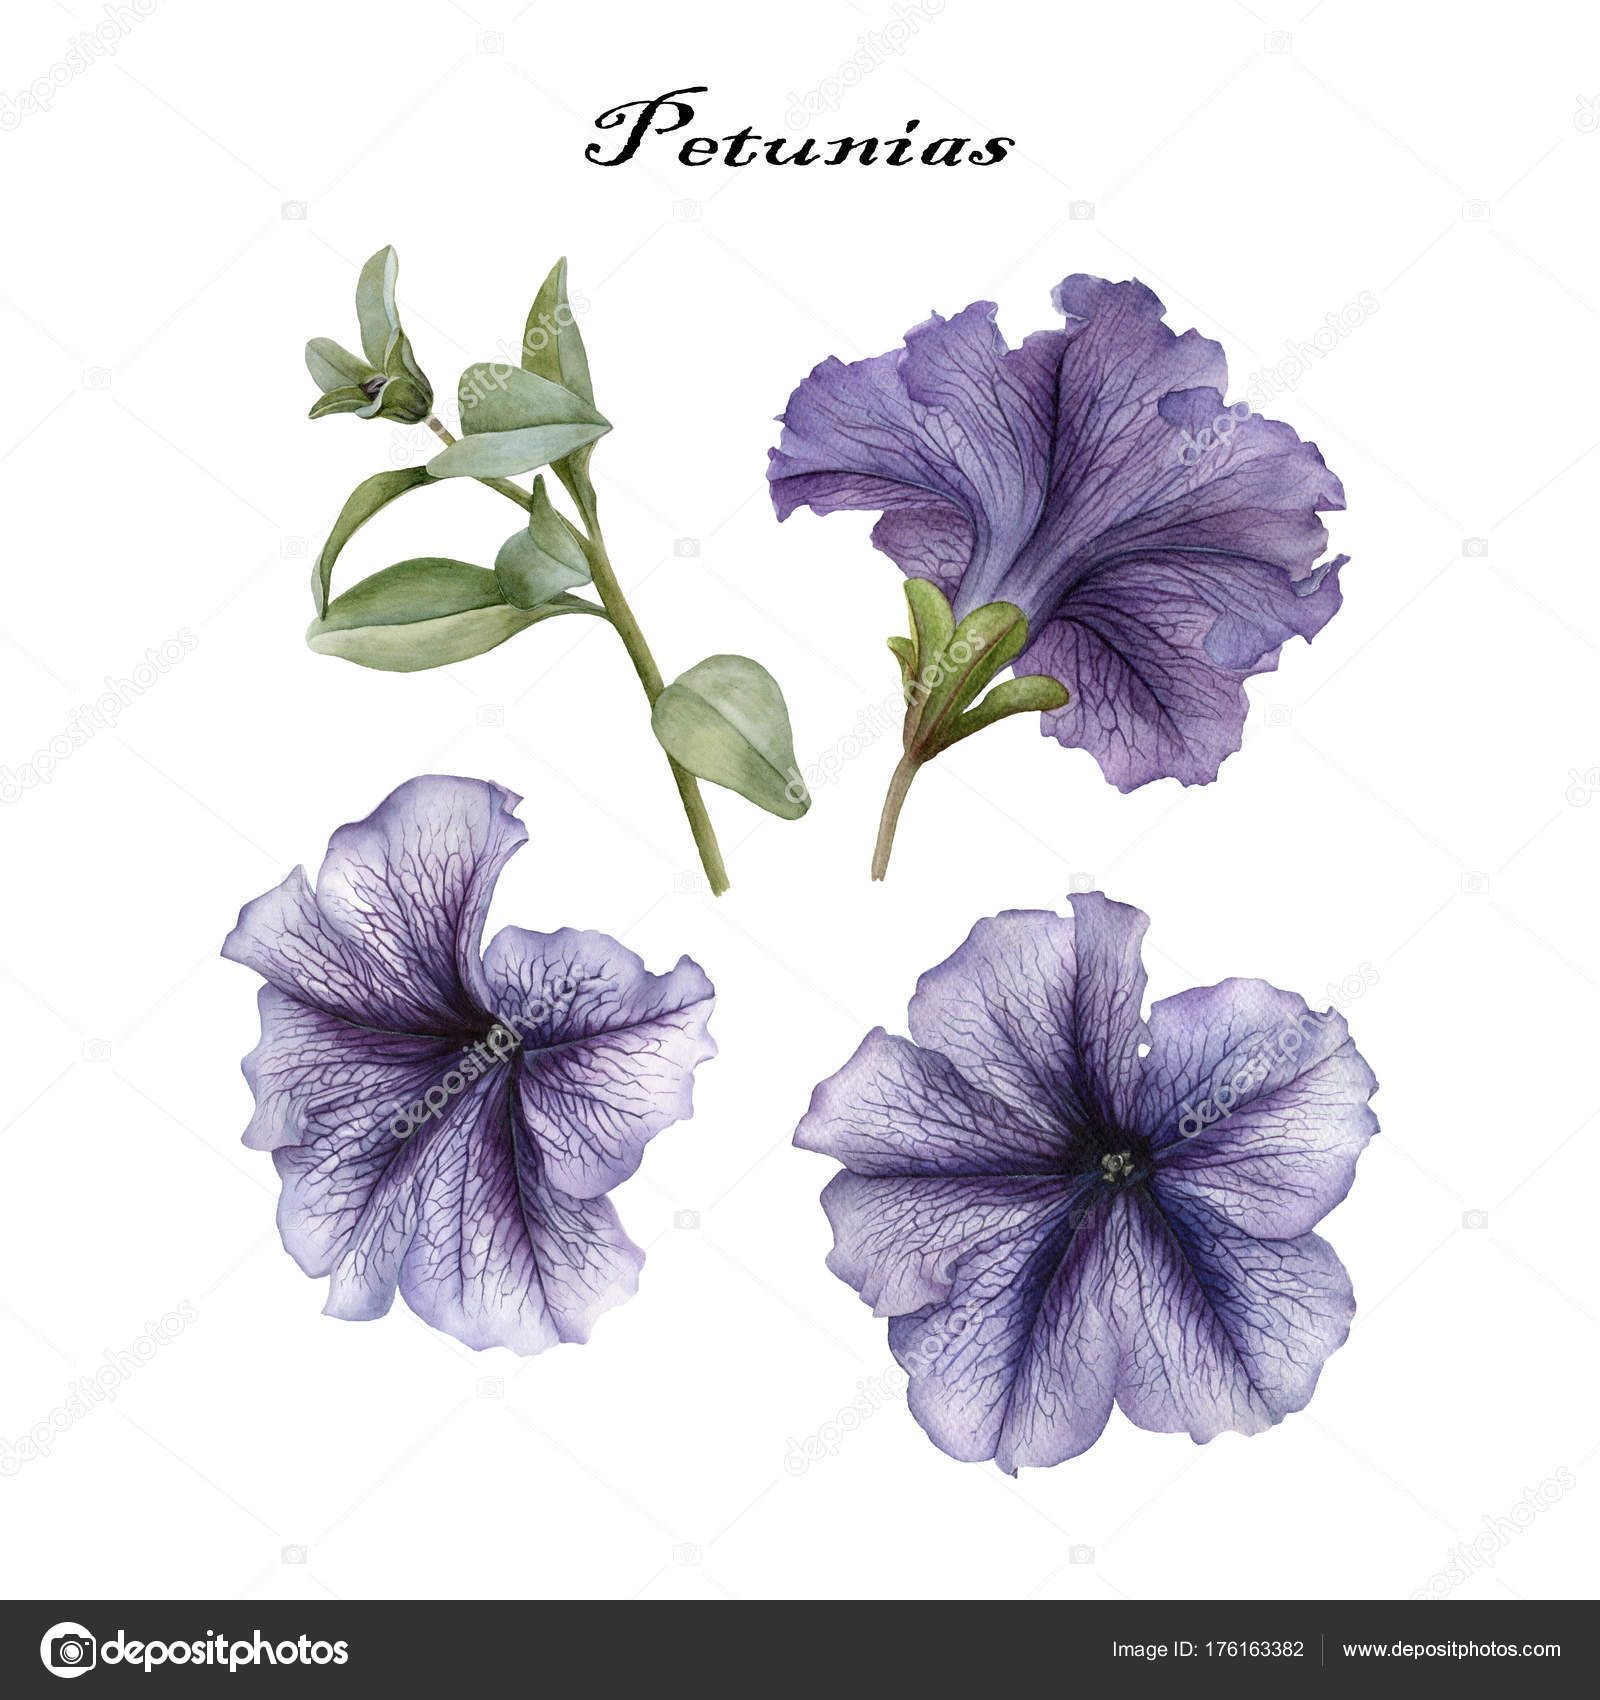 Download Flowers Set Watercolor Petunias Leaves Stock Image Petunior Hur Man Ritar Blommor Blomma Akvarell